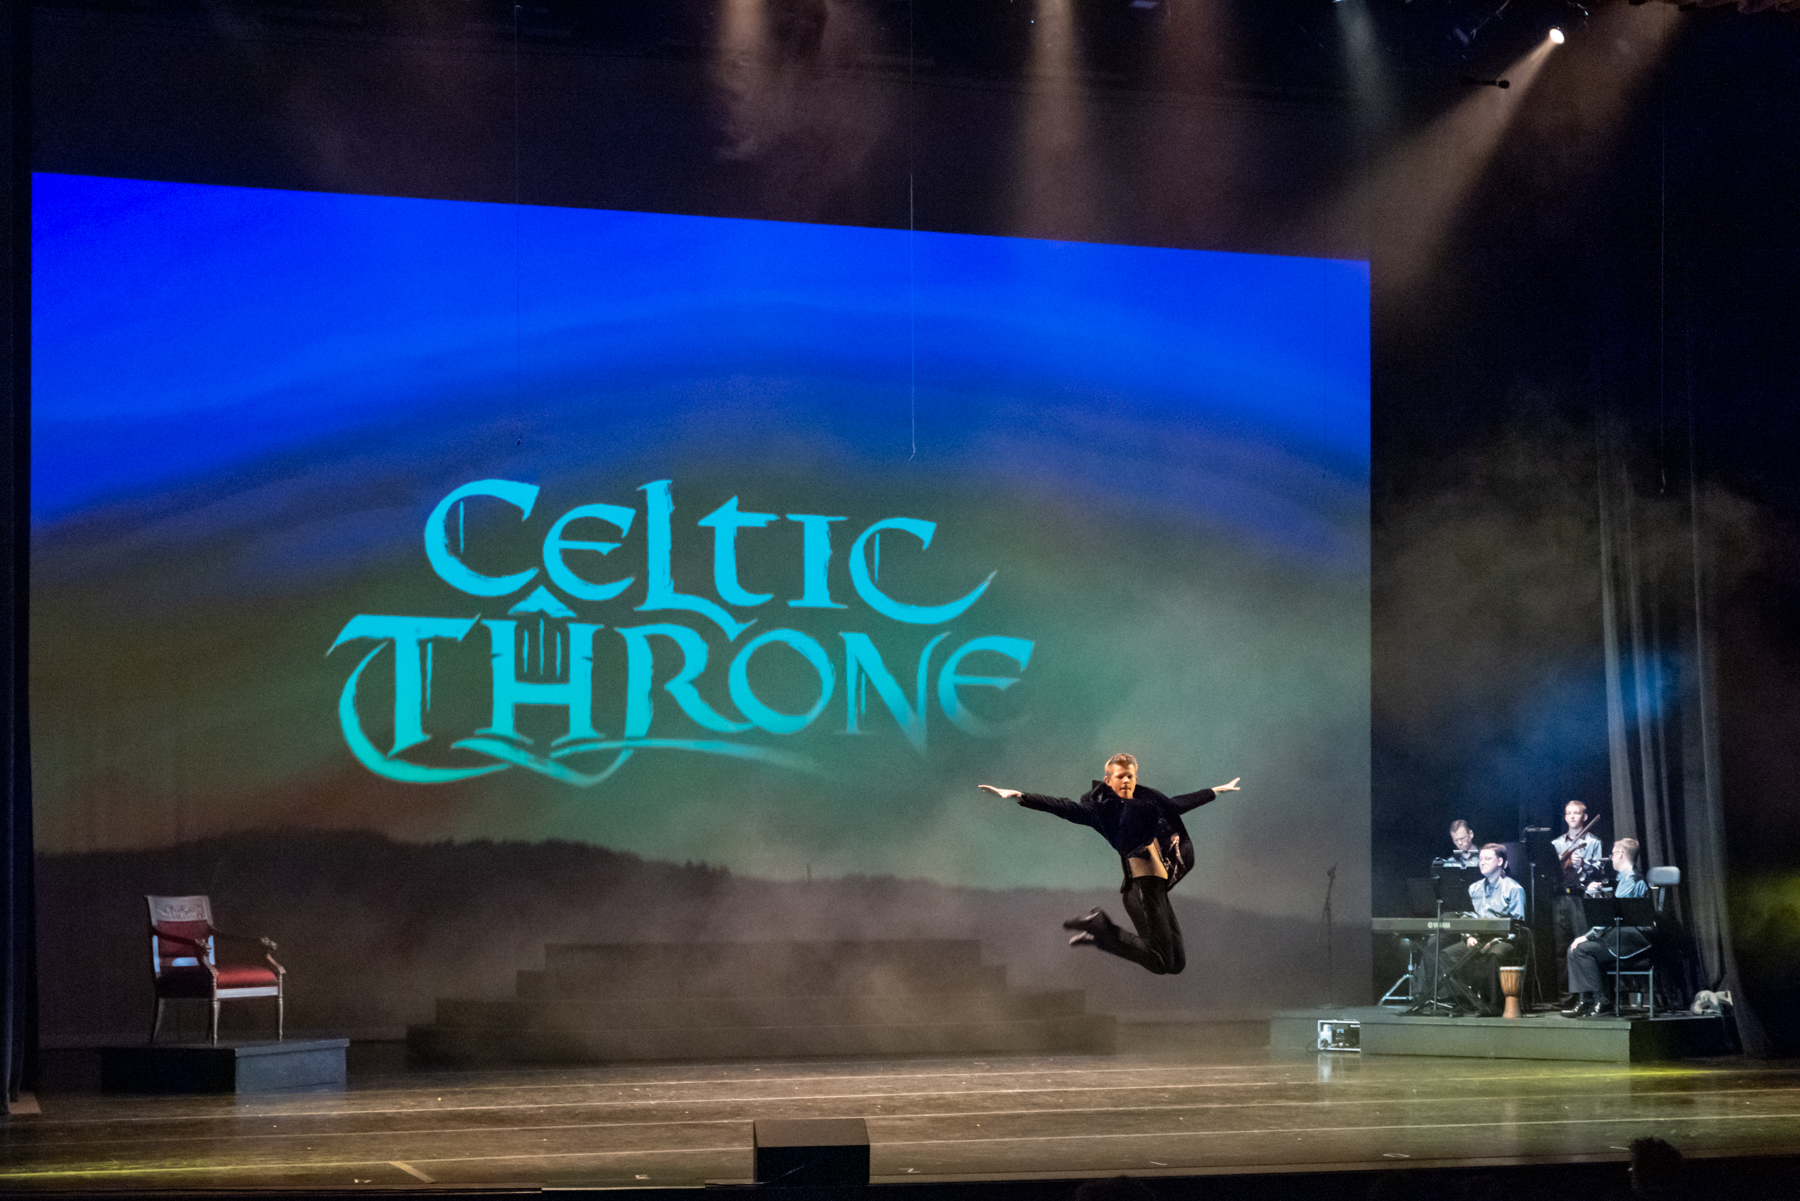 20200623 Celtic Throne Dress Rehearsal Dsc 8526